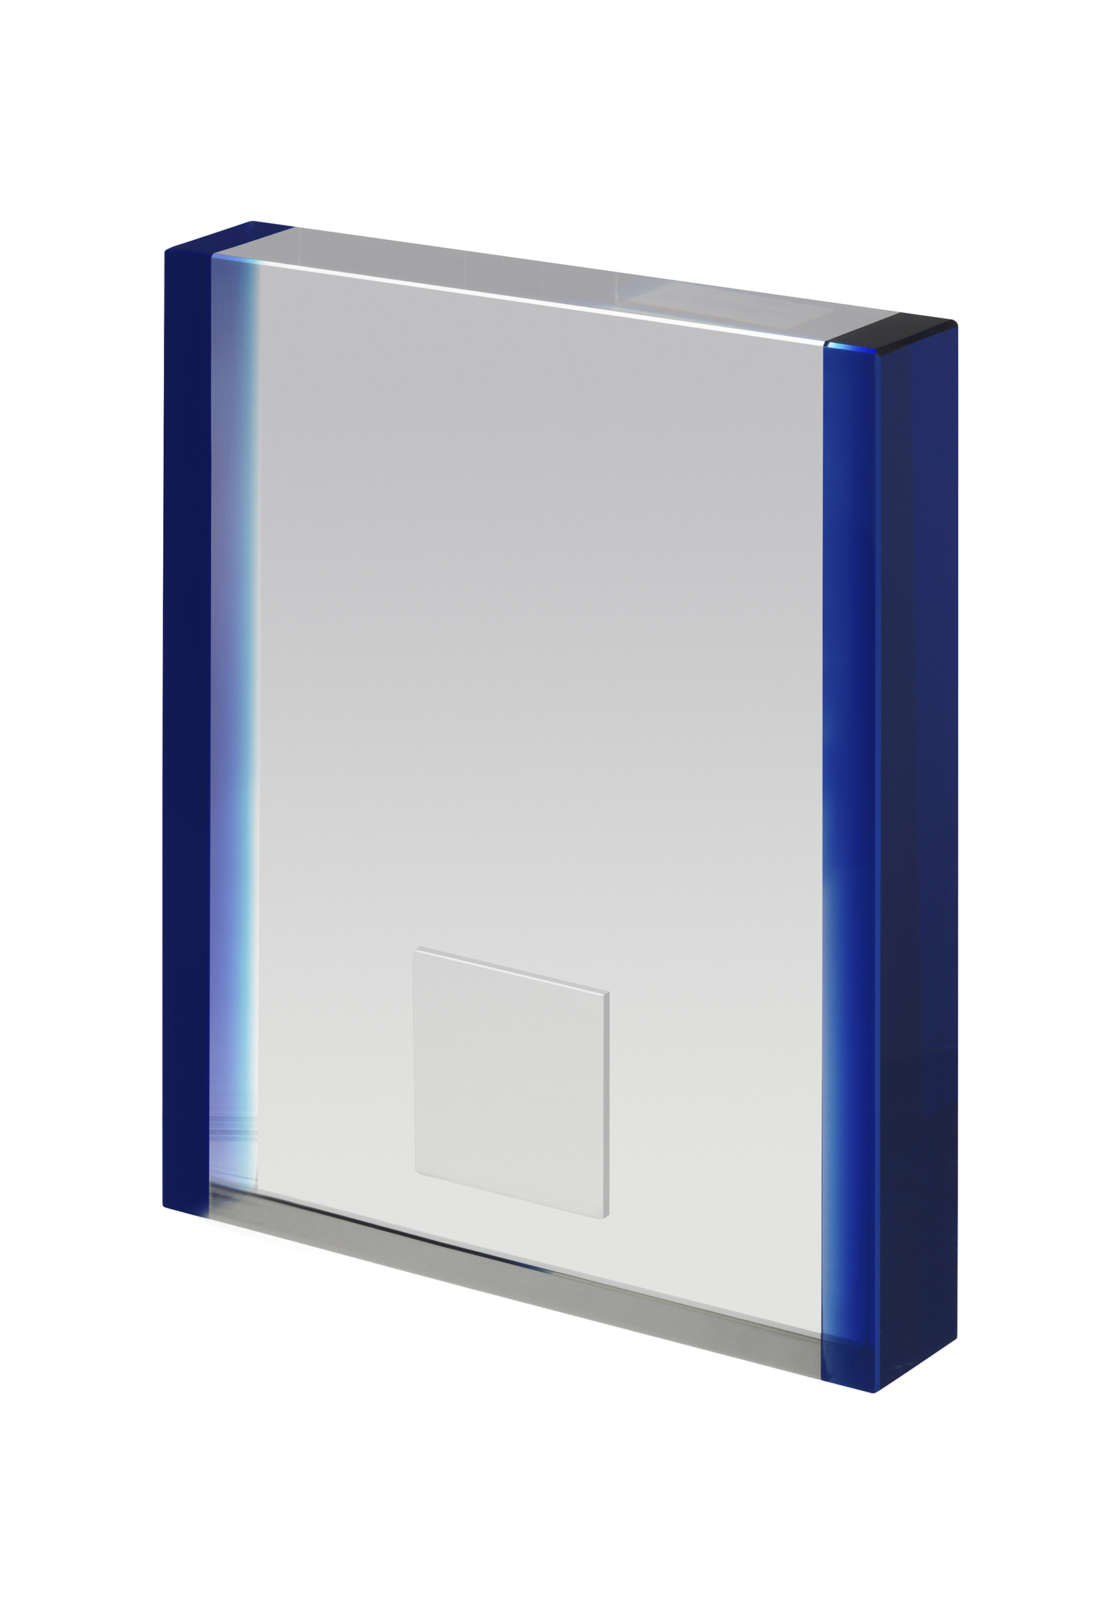 Crystal Block Award with Blue Sides